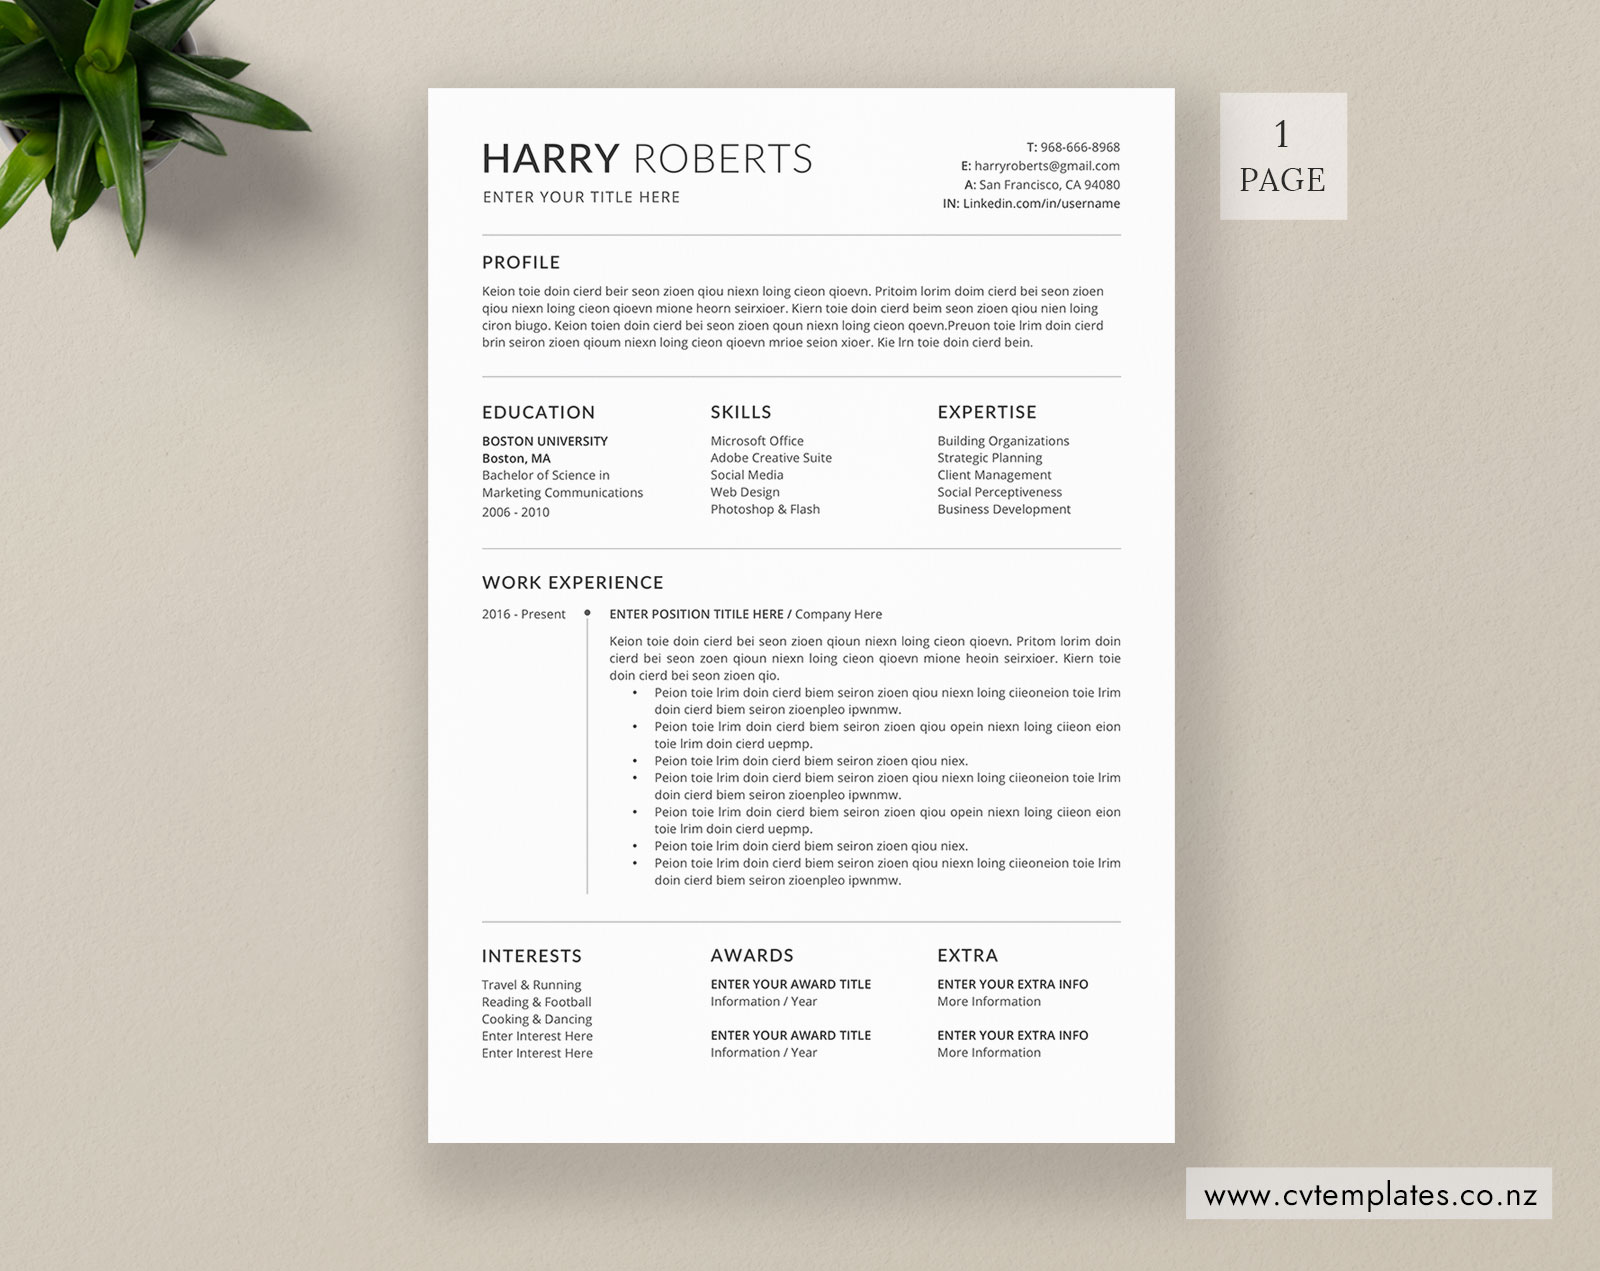 Cv Template For Ms Word Curriculum Vitae Functional Cv Template Cover Letter 1 2 And 3 Page Resume Design Professional Resume Template Instant